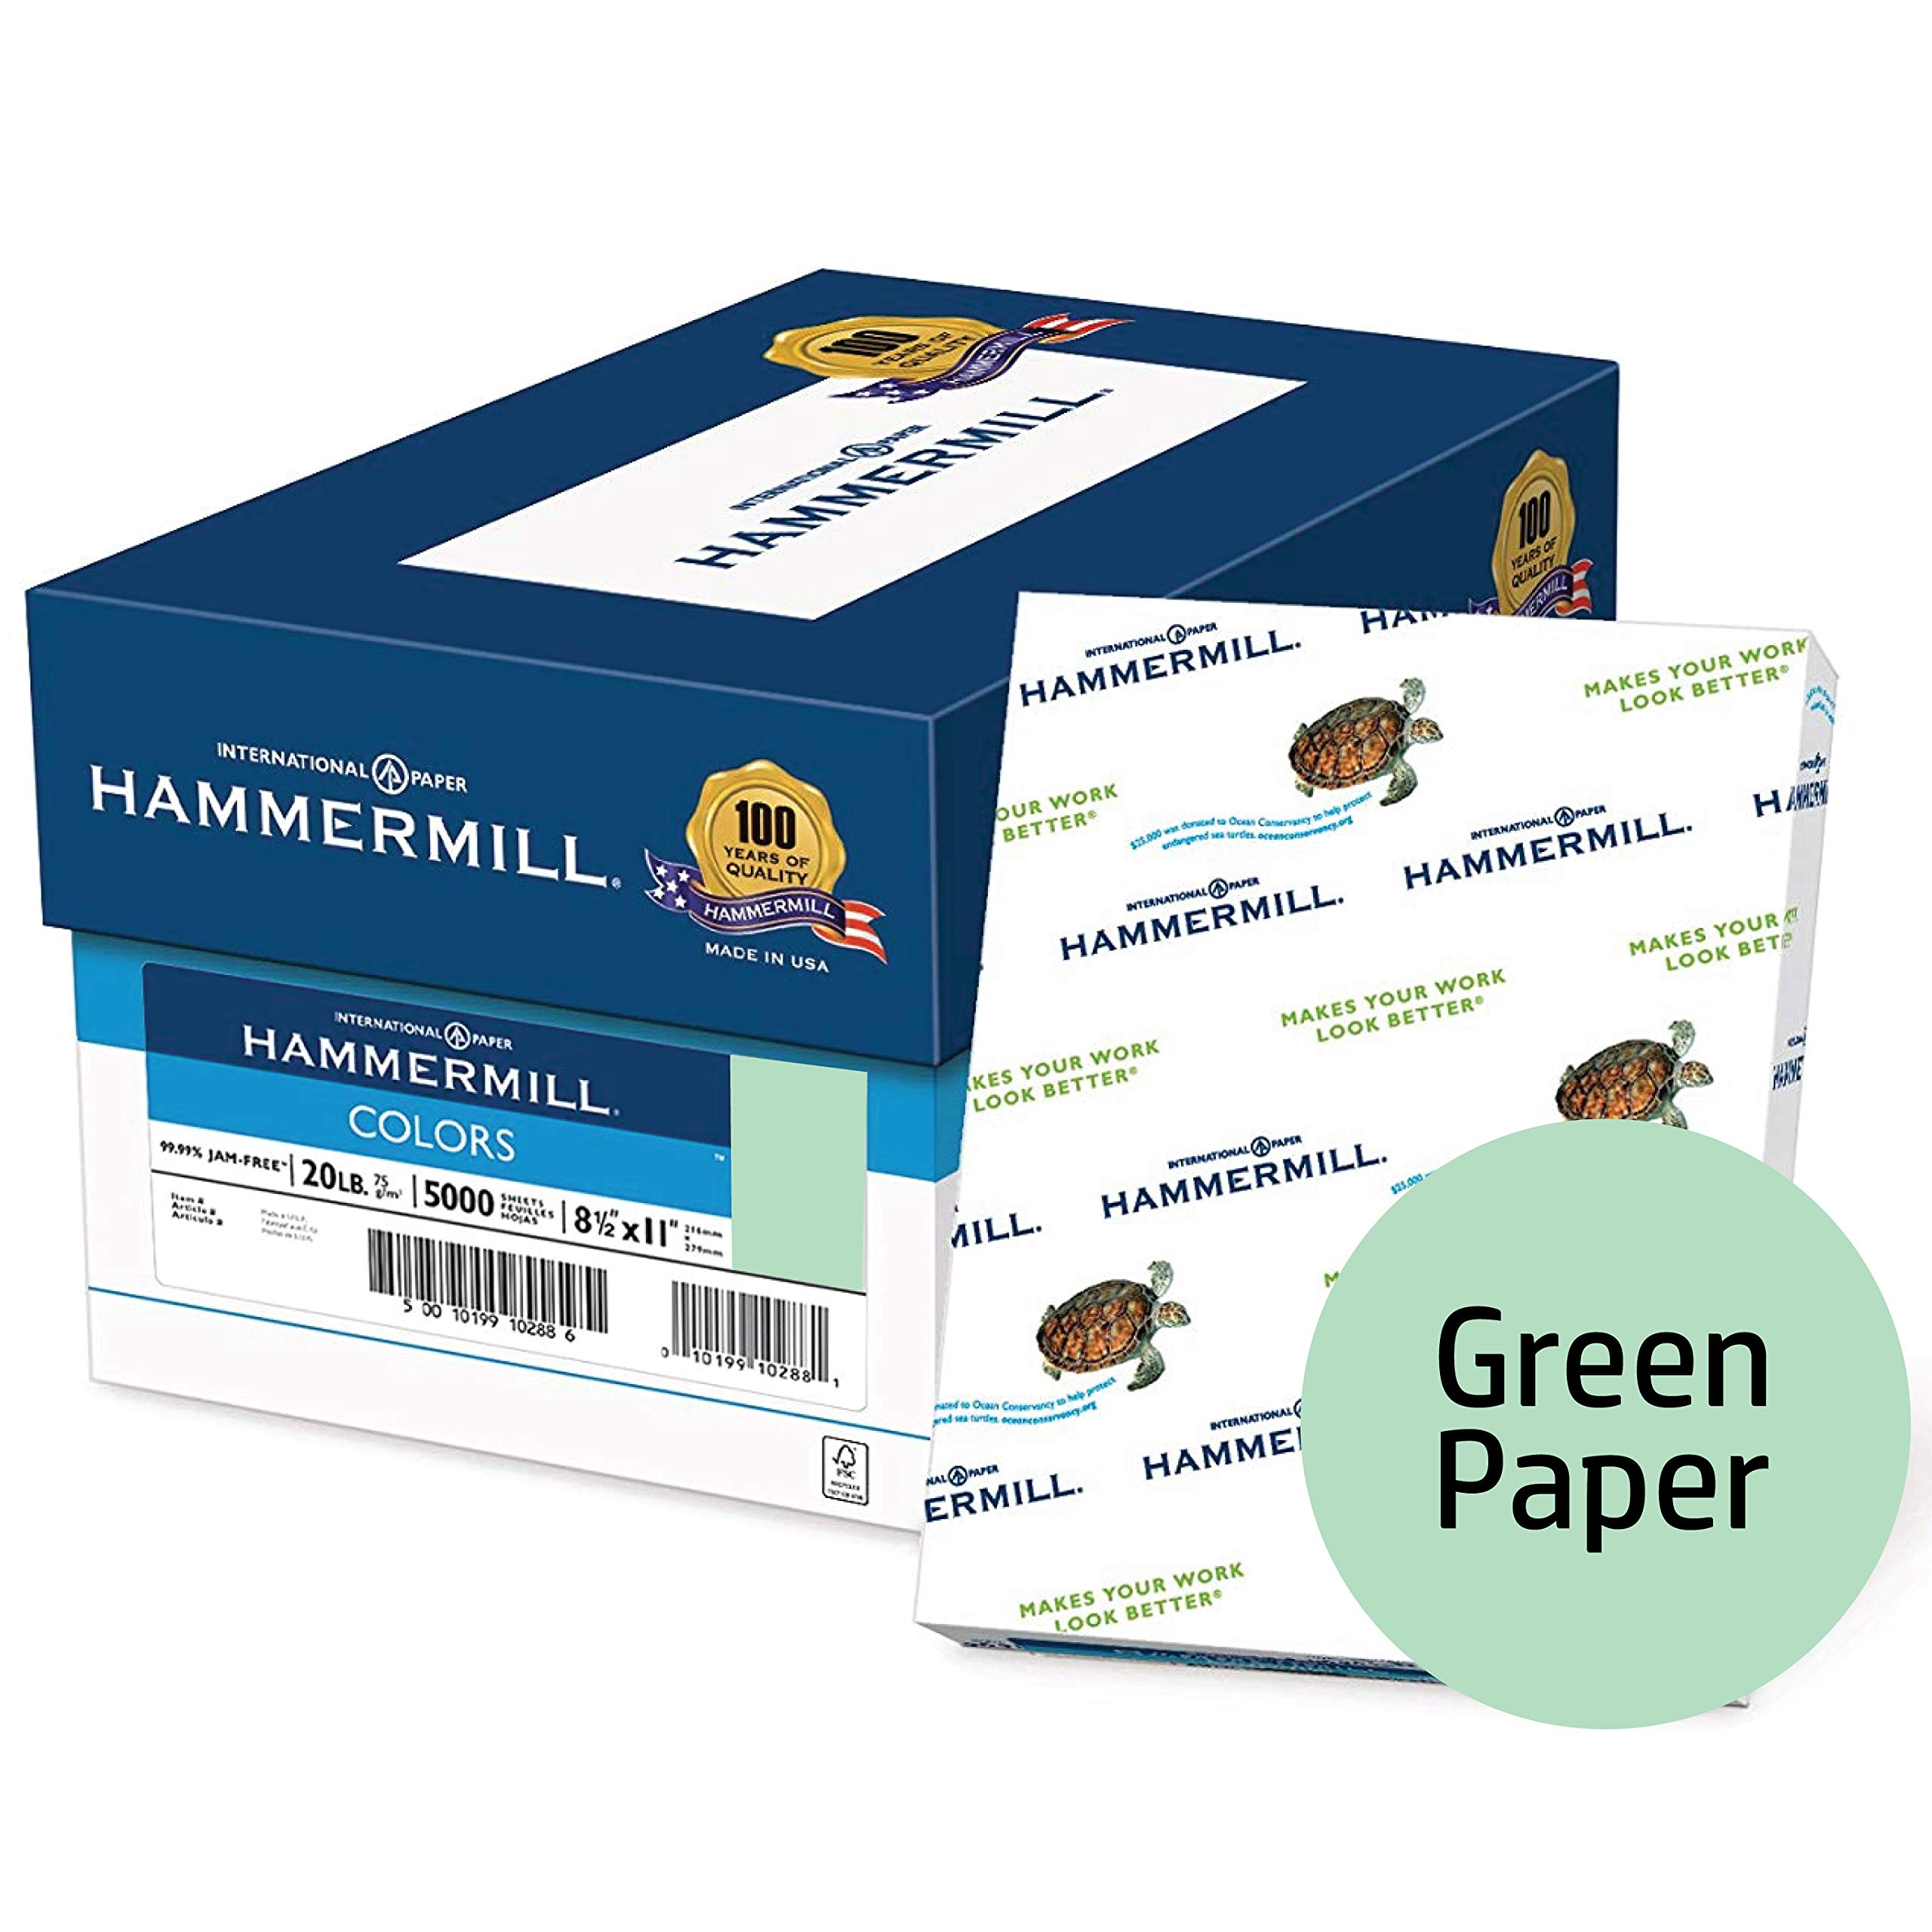 Hammermill Colored Paper, Green Printer Paper, 20lb, 8.5x11 Paper, Letter Size, 5000 Sheets / 10 Ream Case, Pastel Paper, Colorful Paper (103366C)